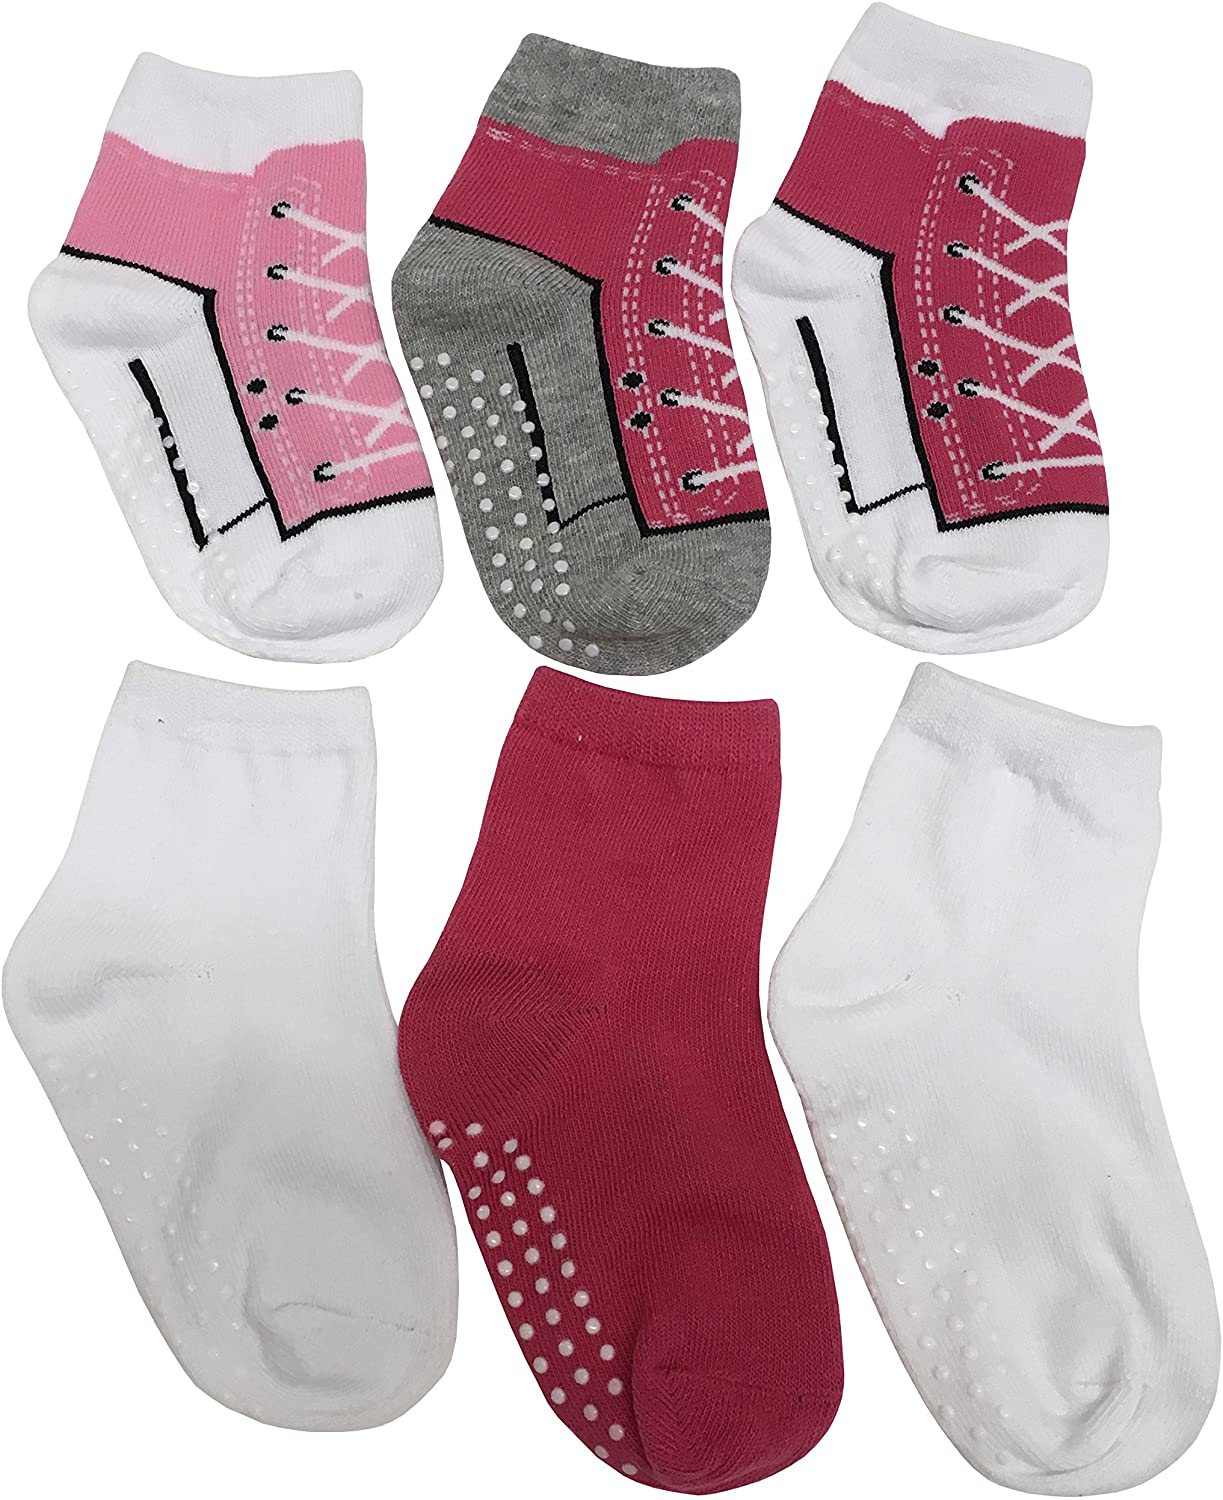 N'Ice Caps Girls and Baby Cotton/Spandex Casual Crew Gripper Socks - 6 Pair Pack